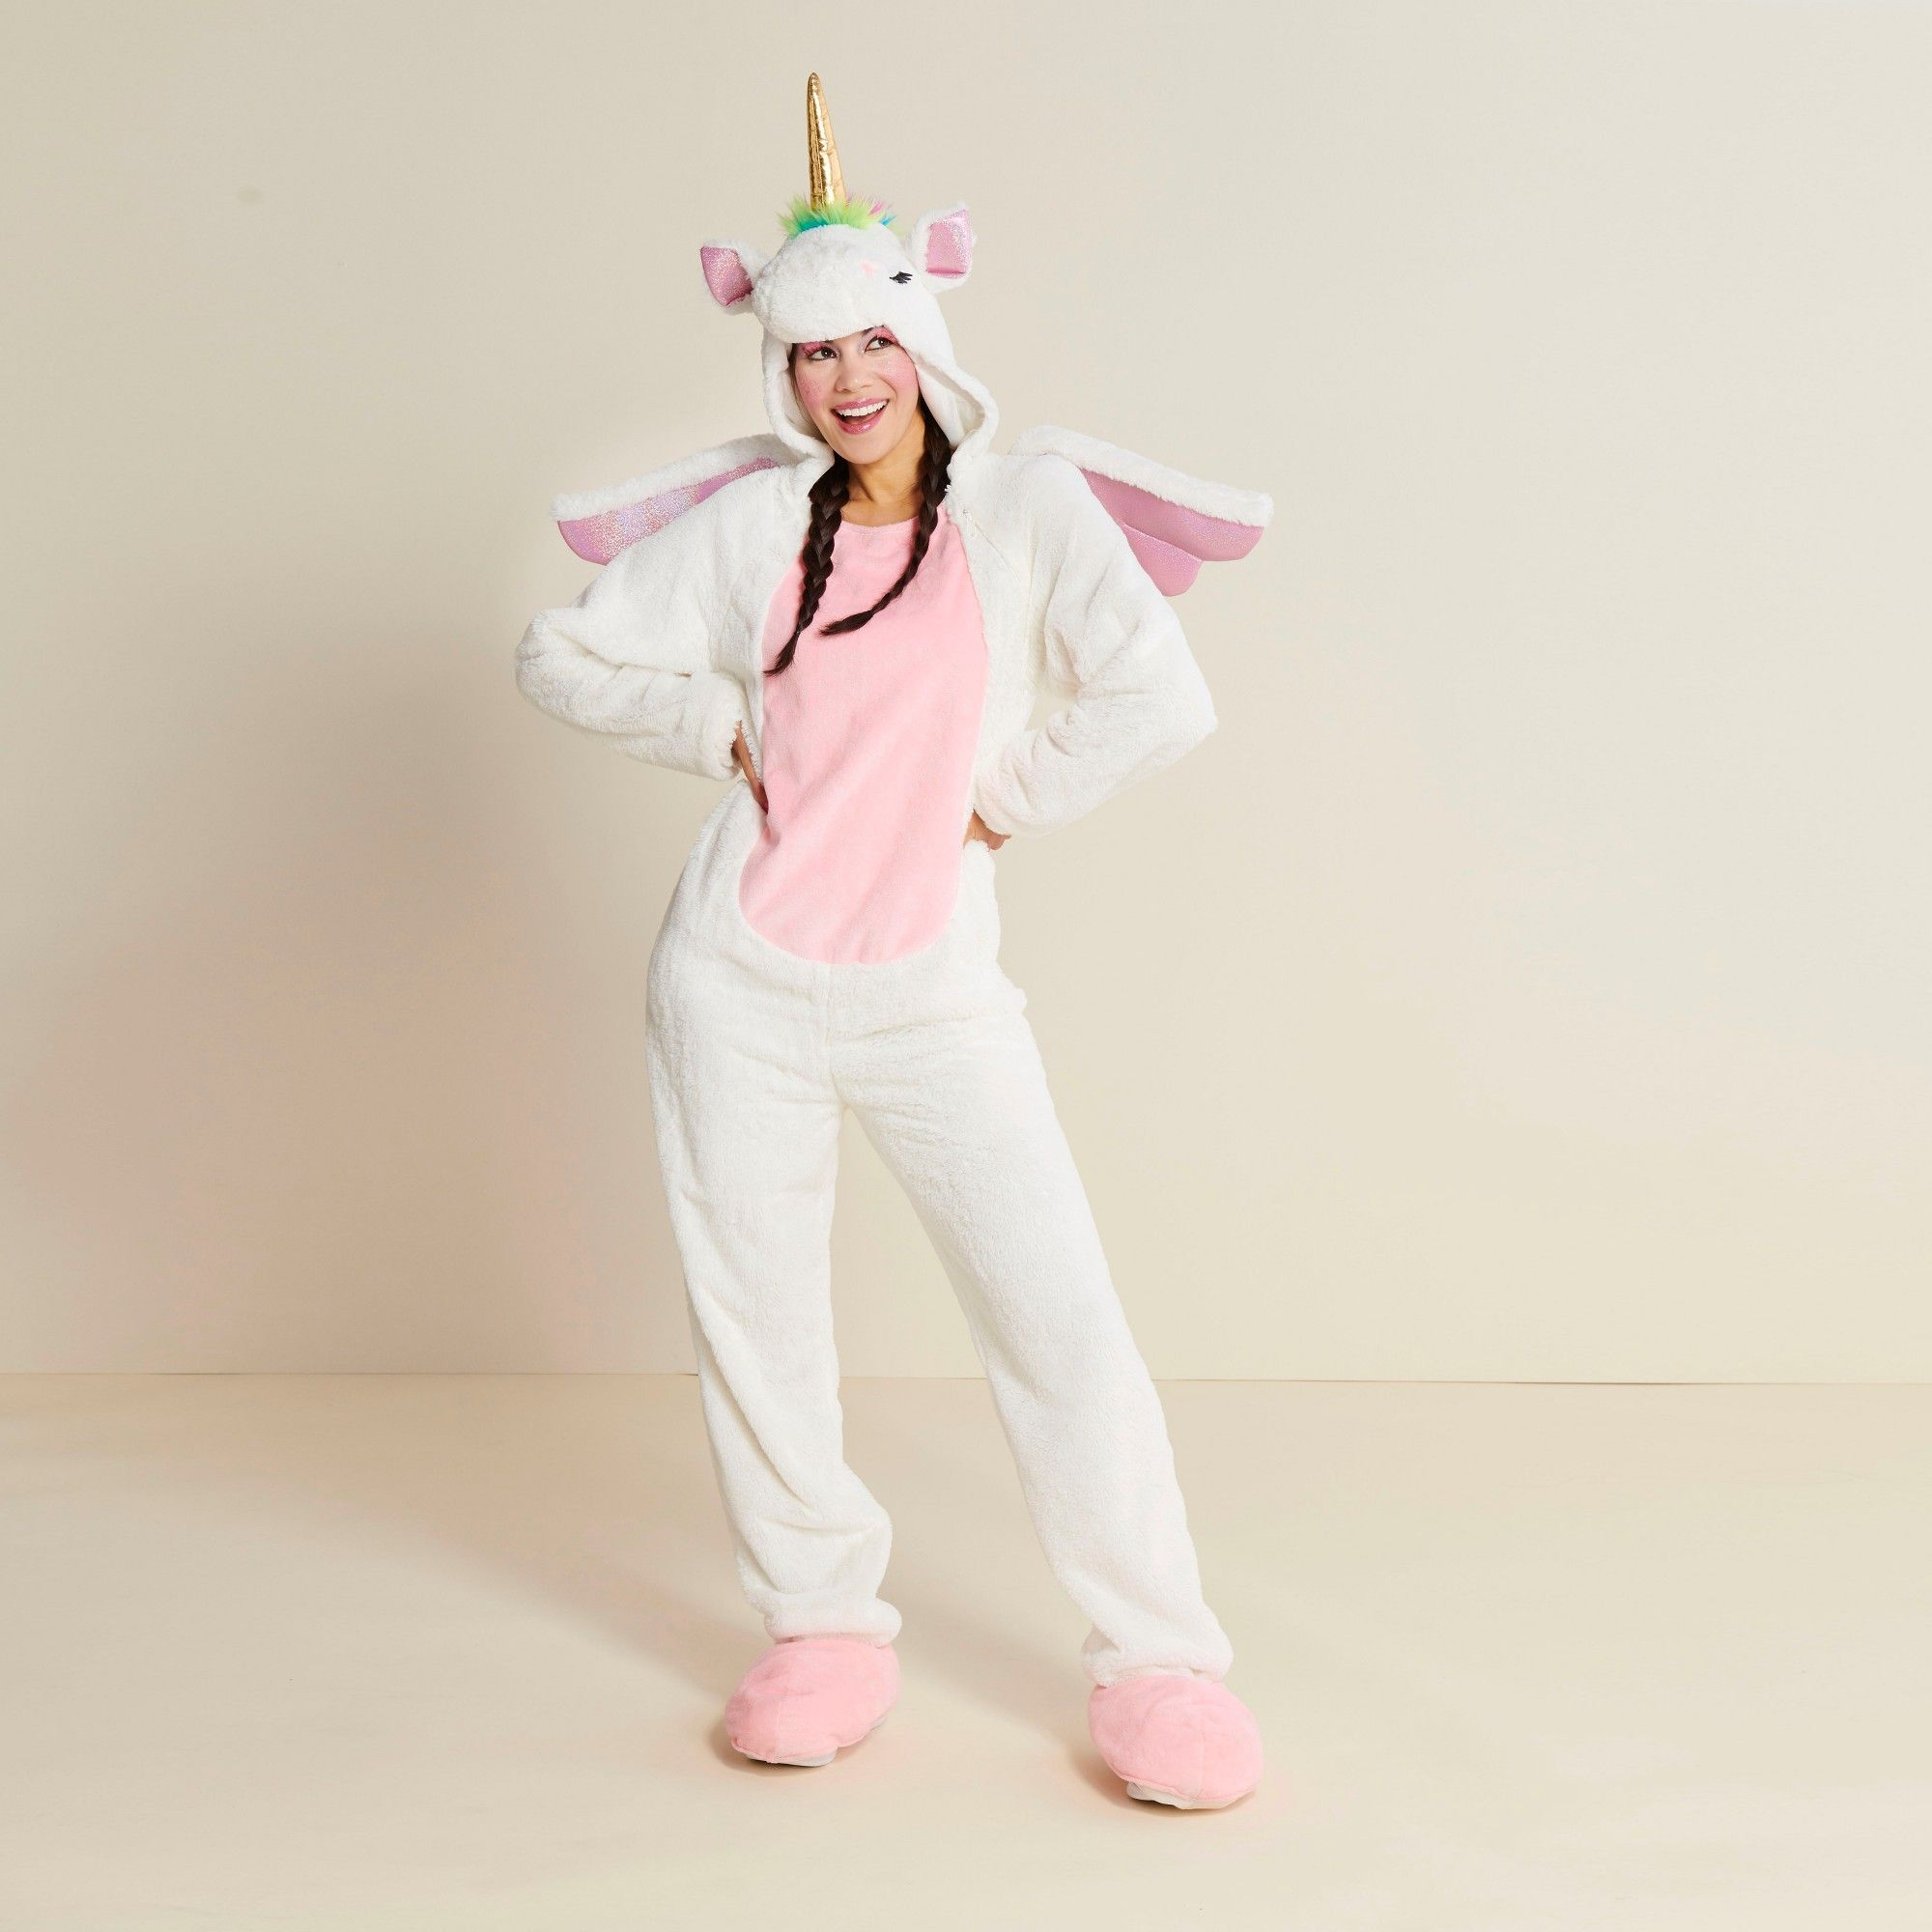 c7f5d8d88b93 Adult Plush Unicorn Halloween Costume S - Hyde and Eek! Boutique, Adult  Unisex, Pink Gold White